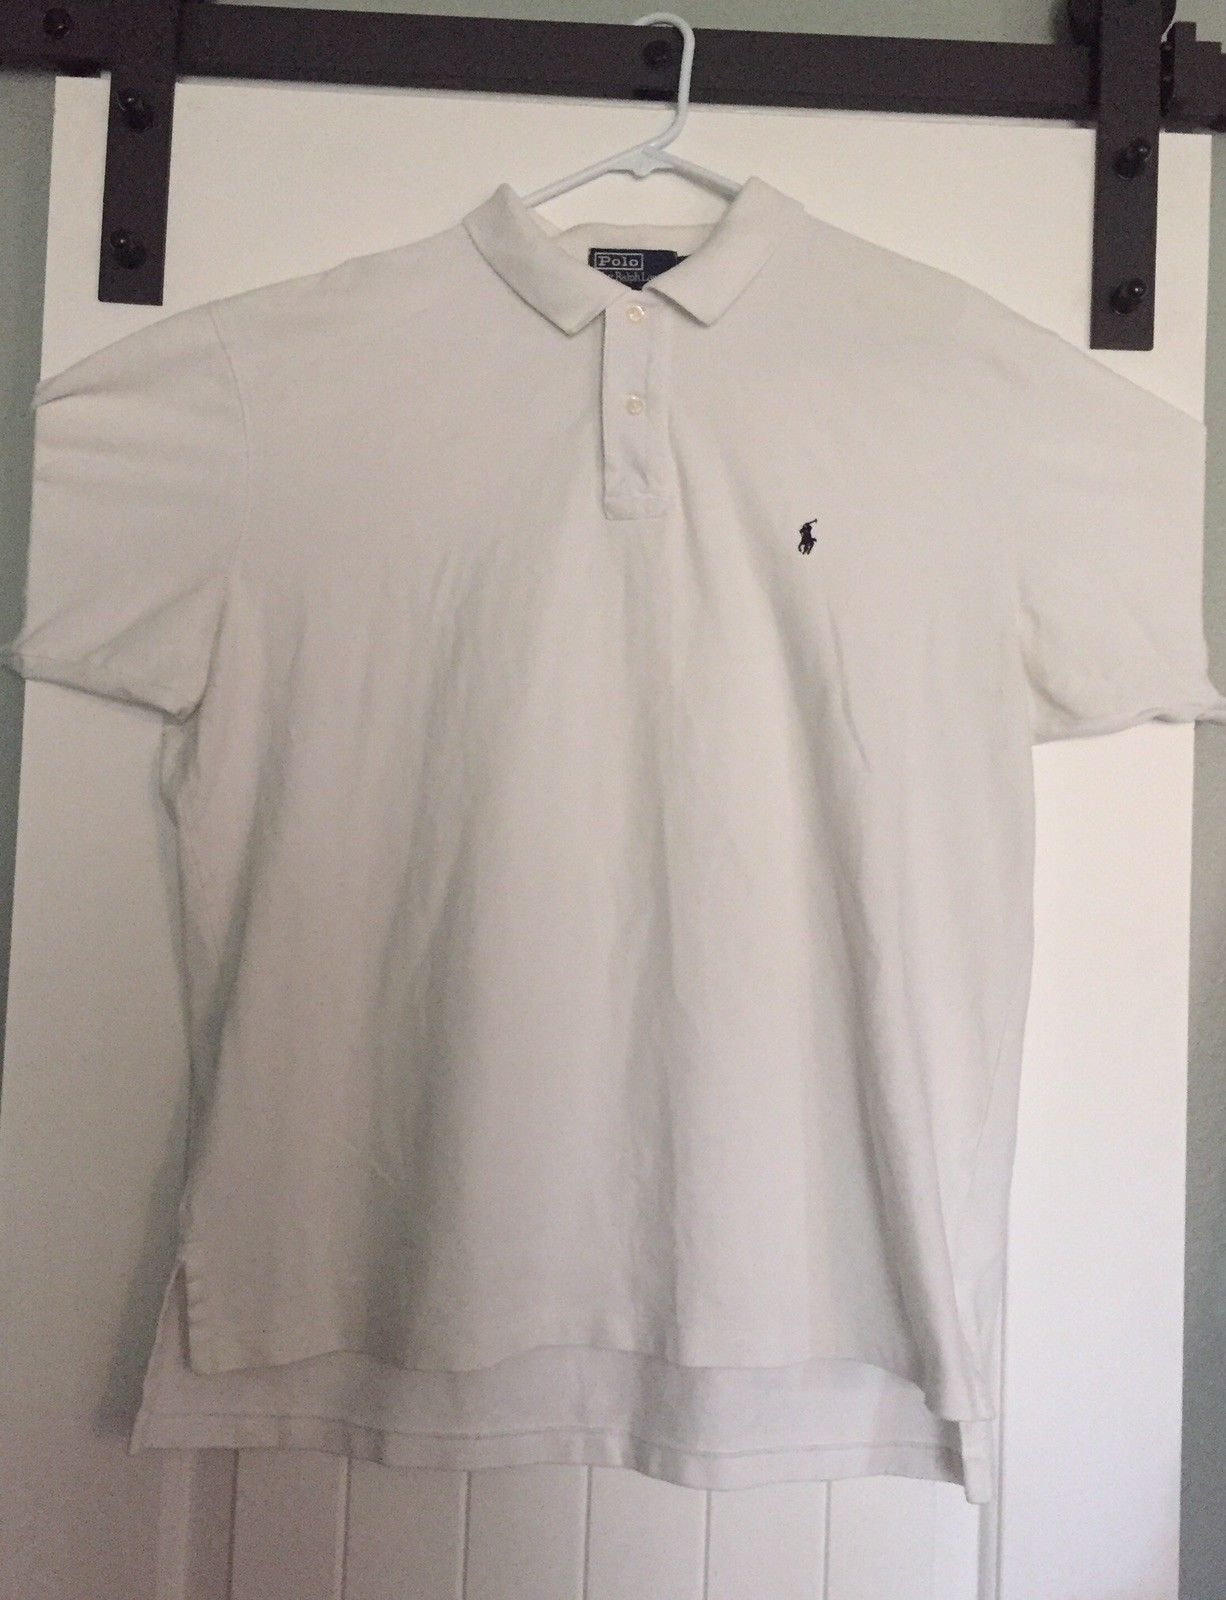 Ralph Lauren Polo White Golf Shirt XXL Bought: $.99 (Goodwill bins) Listed: $14.99 Sold: $11.50 Profit: $10.51 (minus eBay's cut)